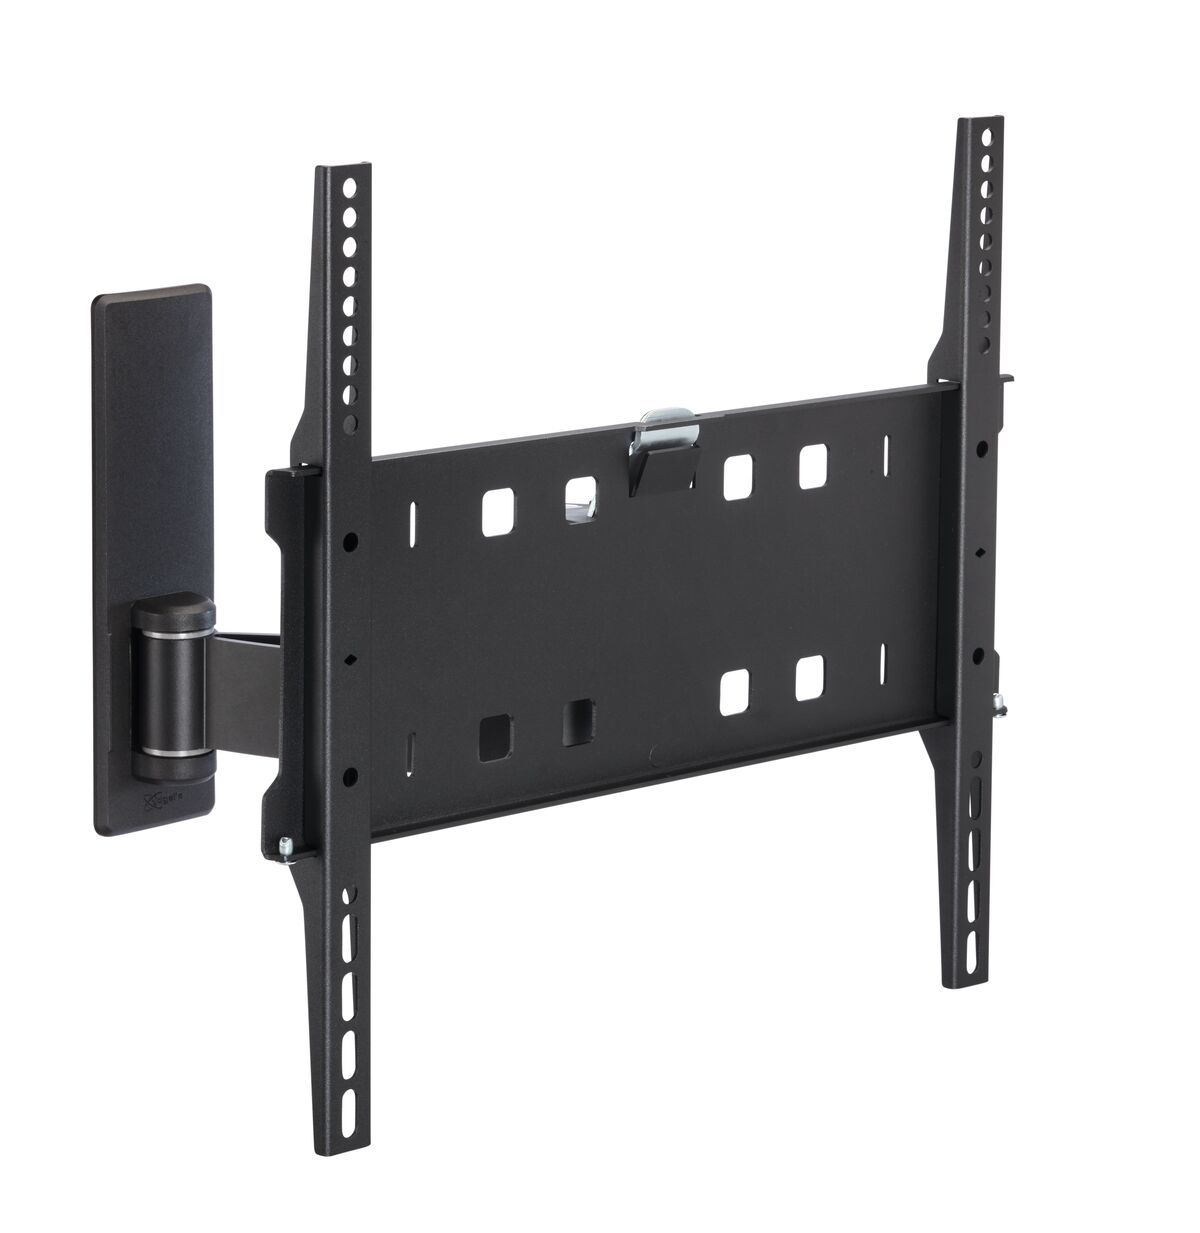 Vogel's PFW 3030 Display wall mount turn & tilt - Product